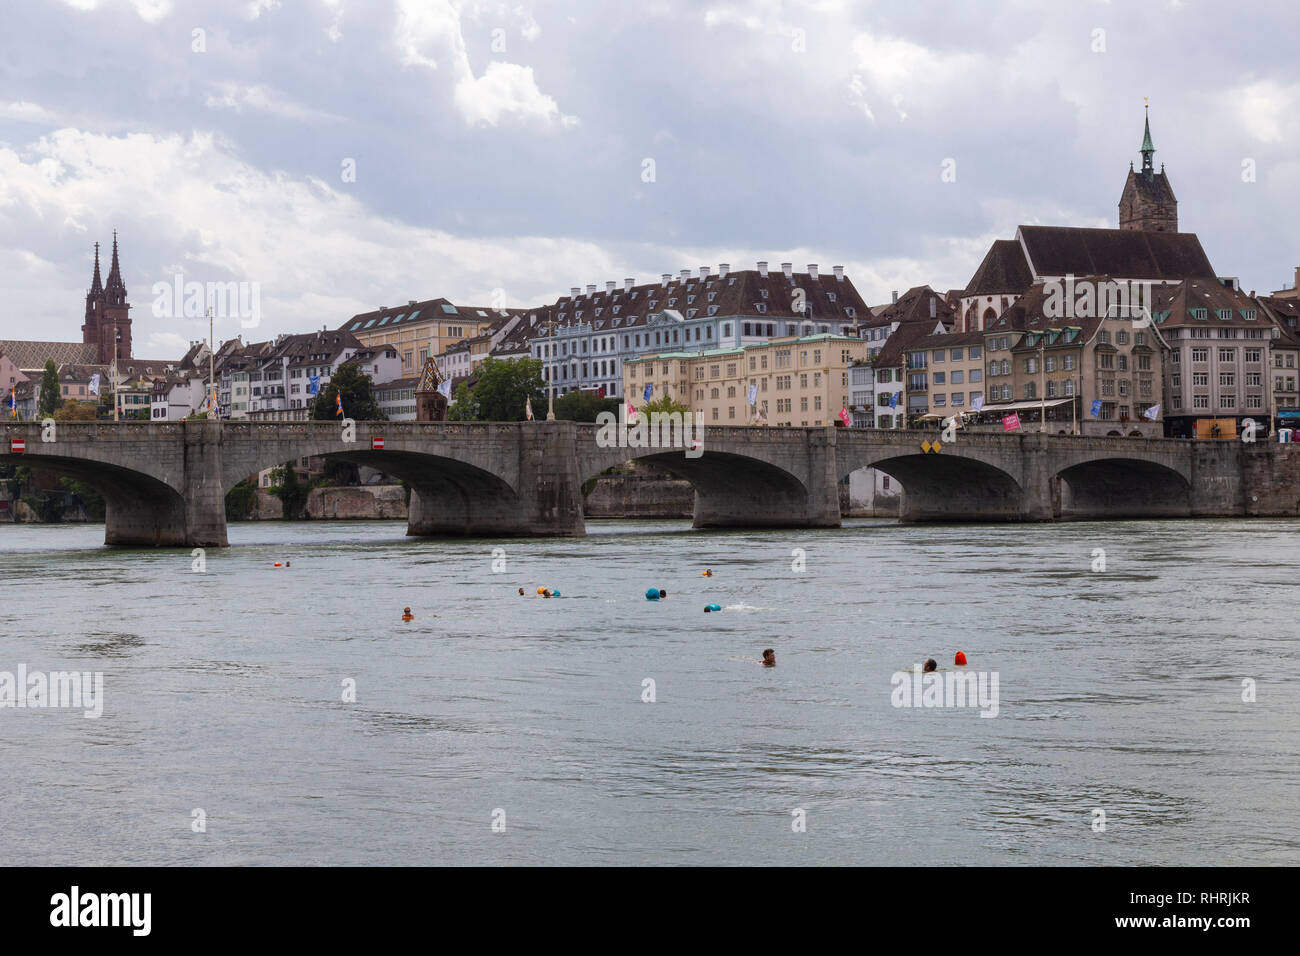 In Basel, it is customary to swim down the Rihn river on hot summer days, get into the water between the Wettsteinbrücke and Johanniterbrücke bridges - Stock Image